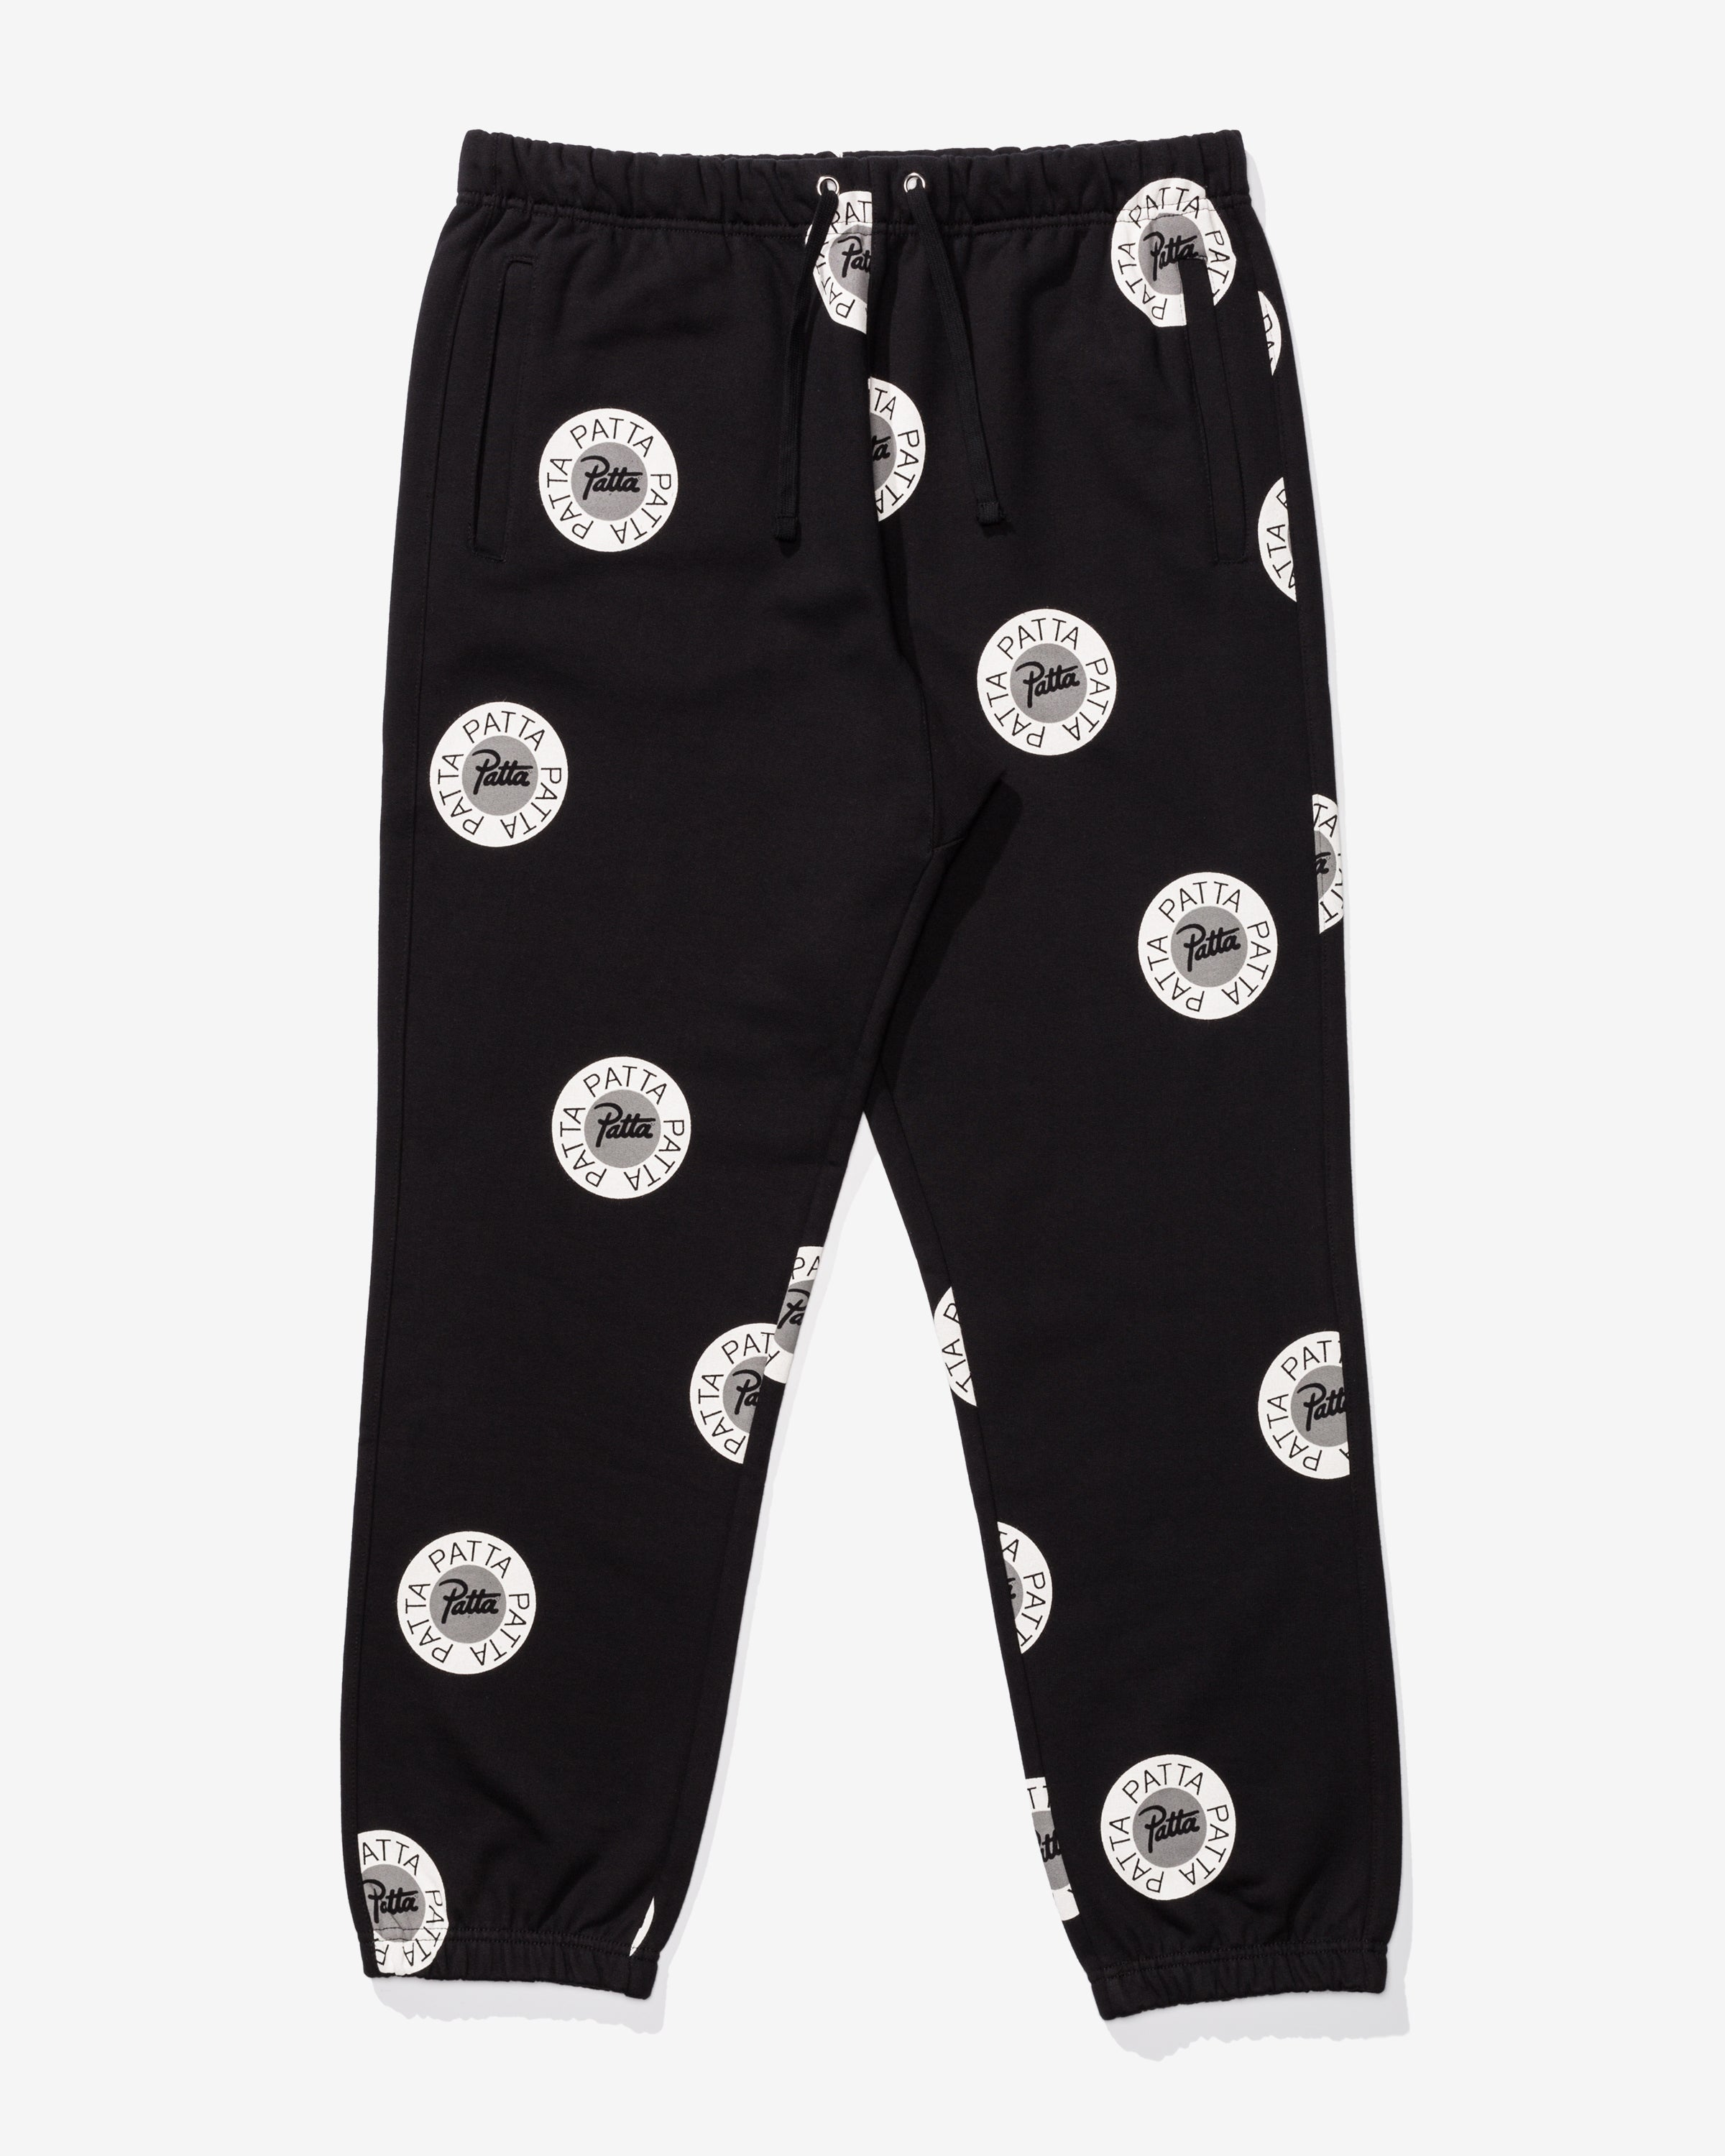 PATTA EMBLEM JOGGING PANTS - BLACK